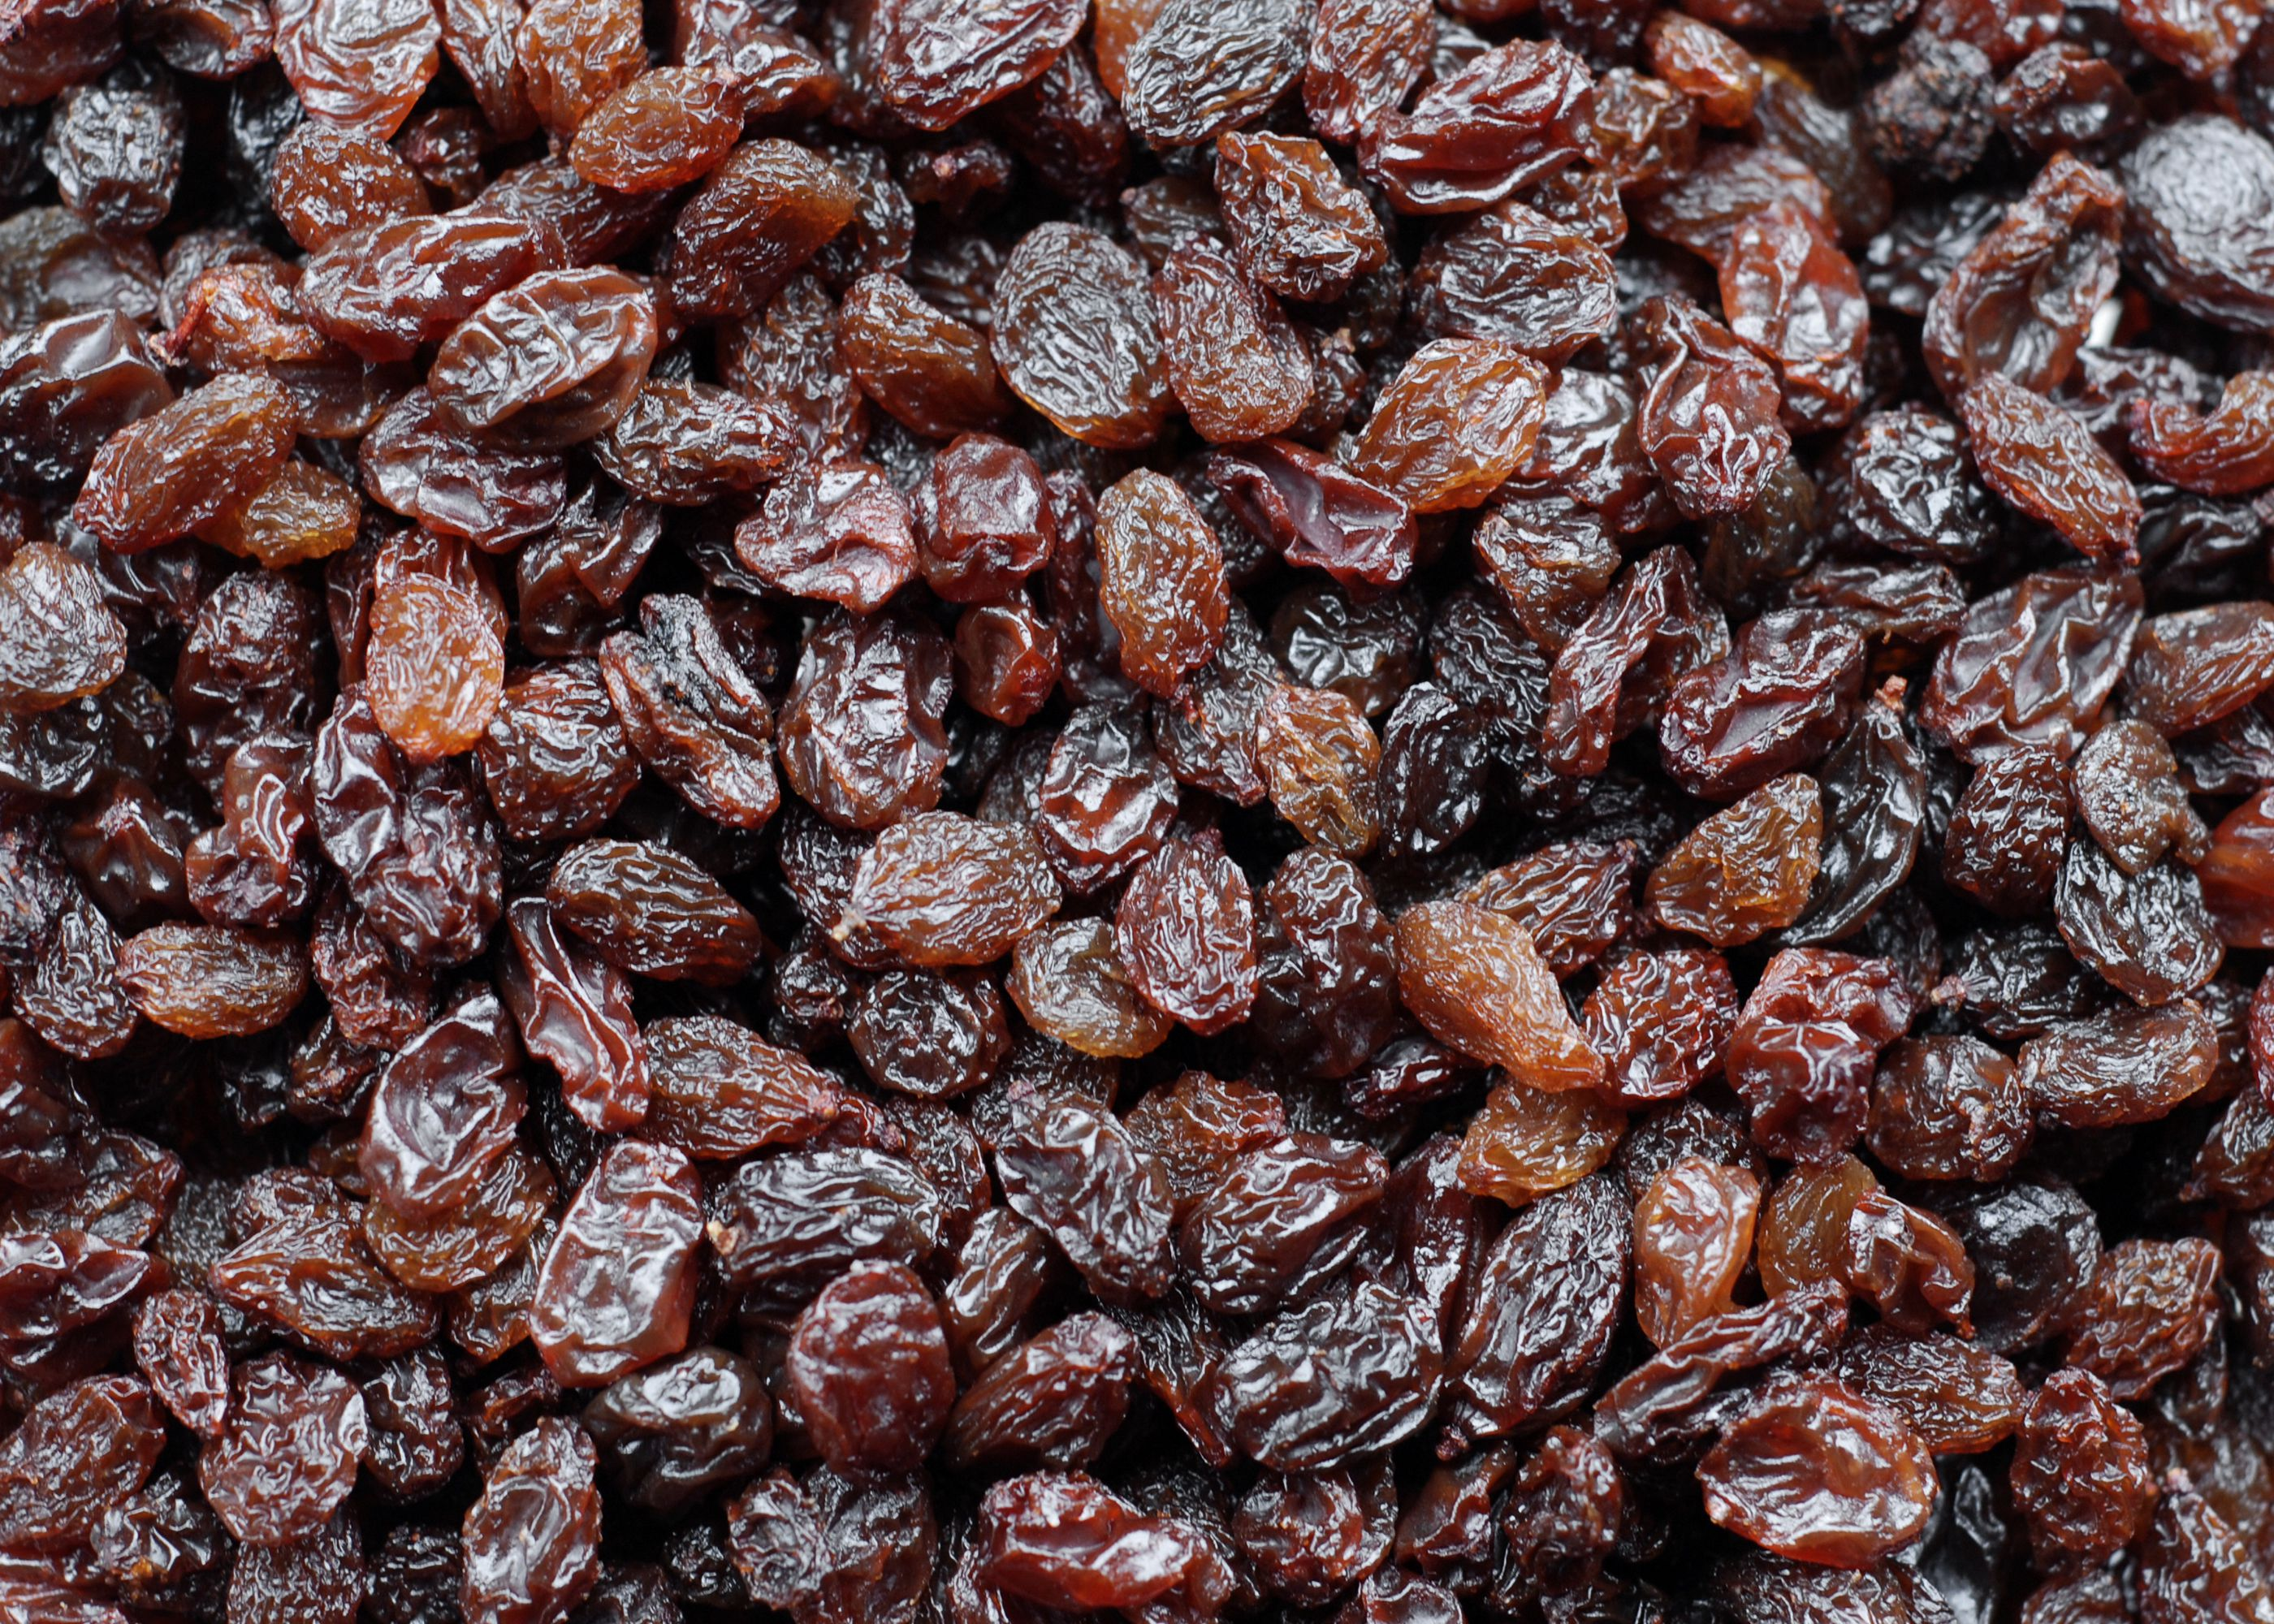 Carb Counts And Health Benefits Of Raisins